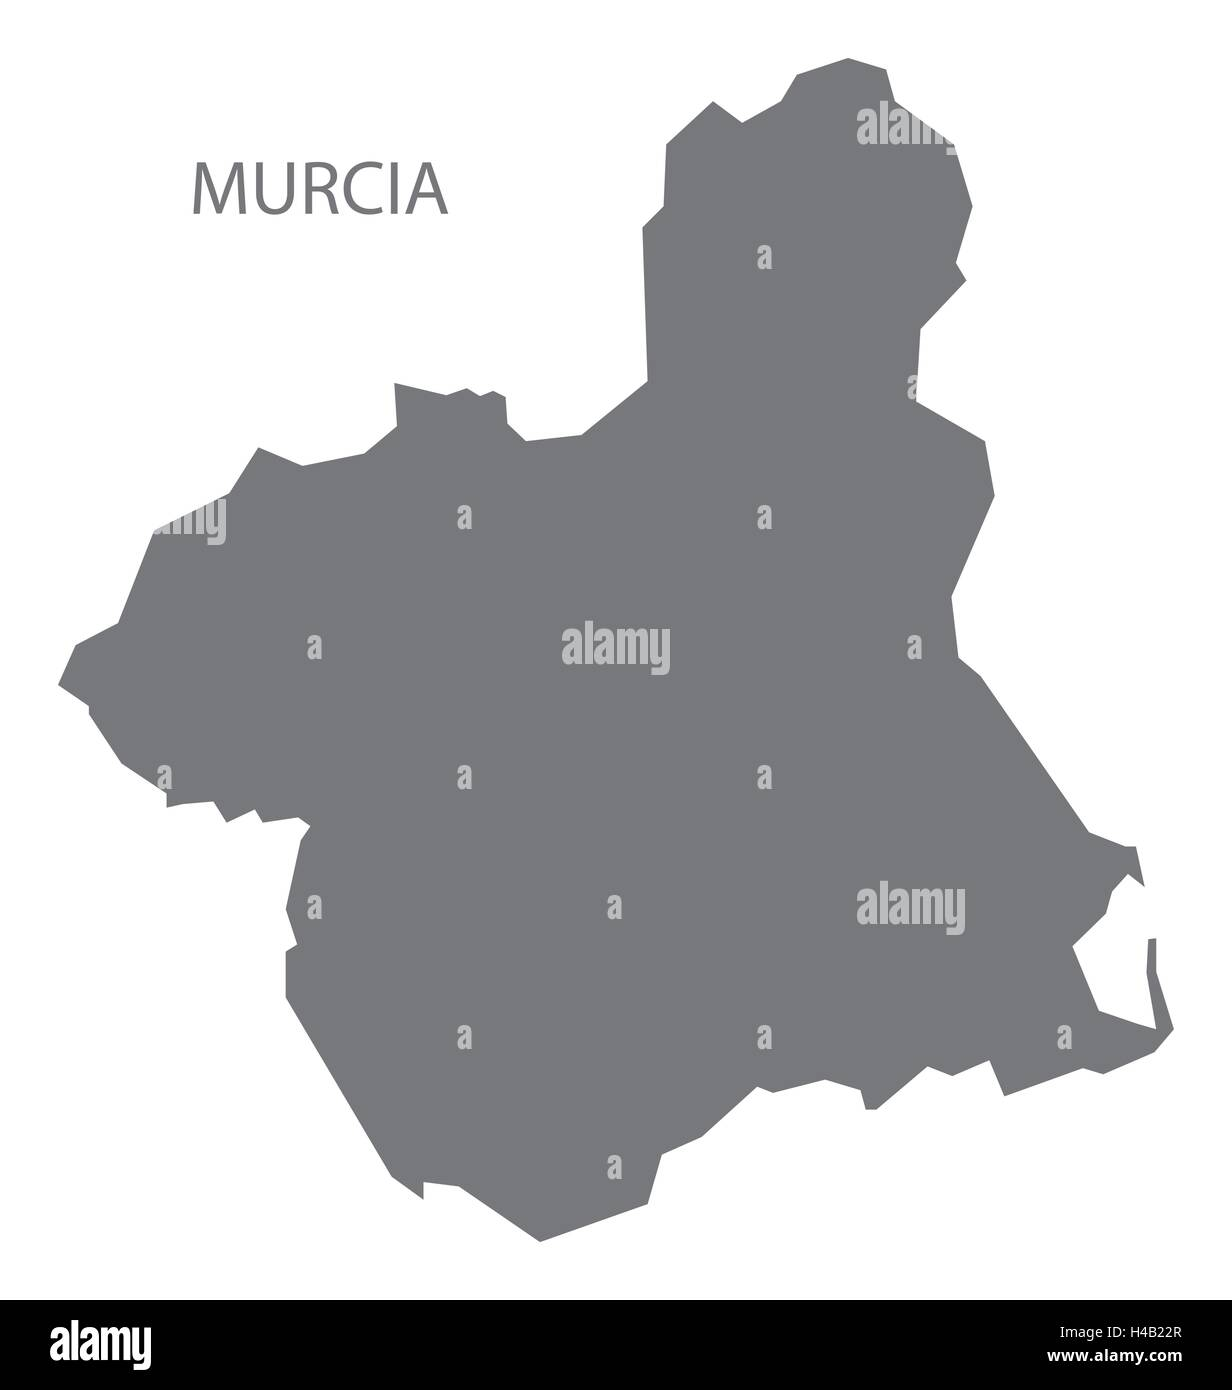 Map Of Spain Murcia.Murcia Spain Map In Grey Stock Vector Art Illustration